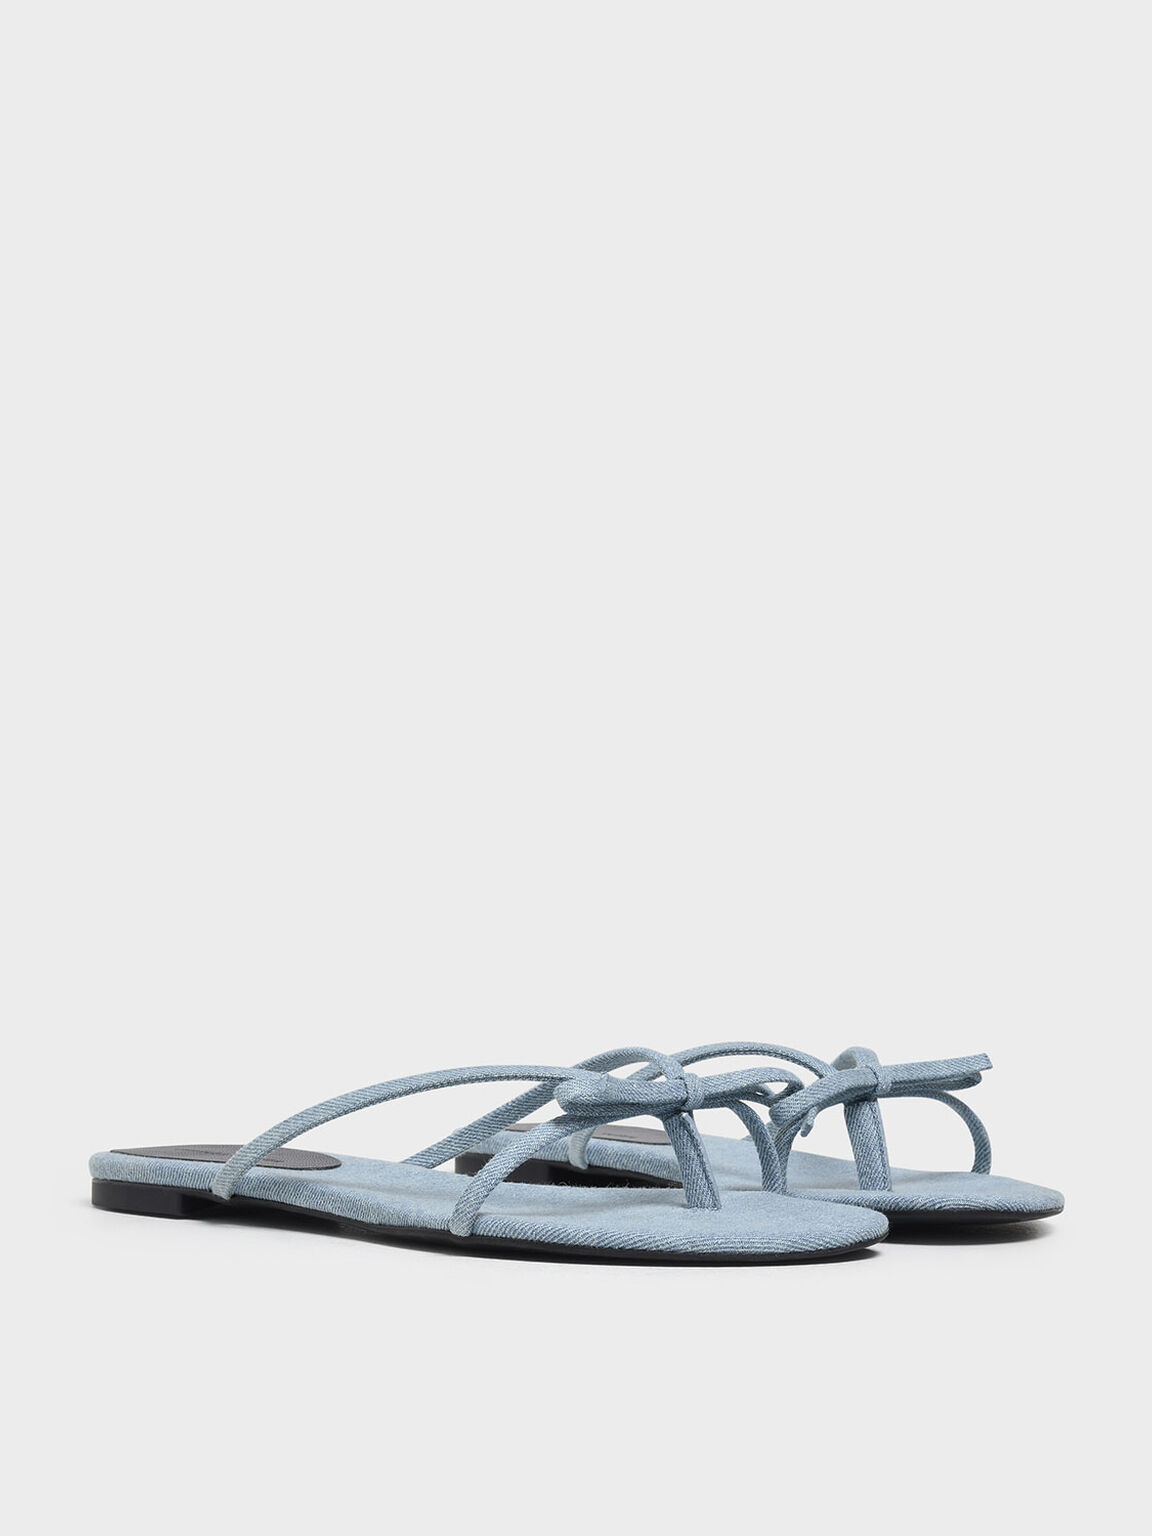 Strappy Bow Denim Thong Sandals, Light Blue, hi-res